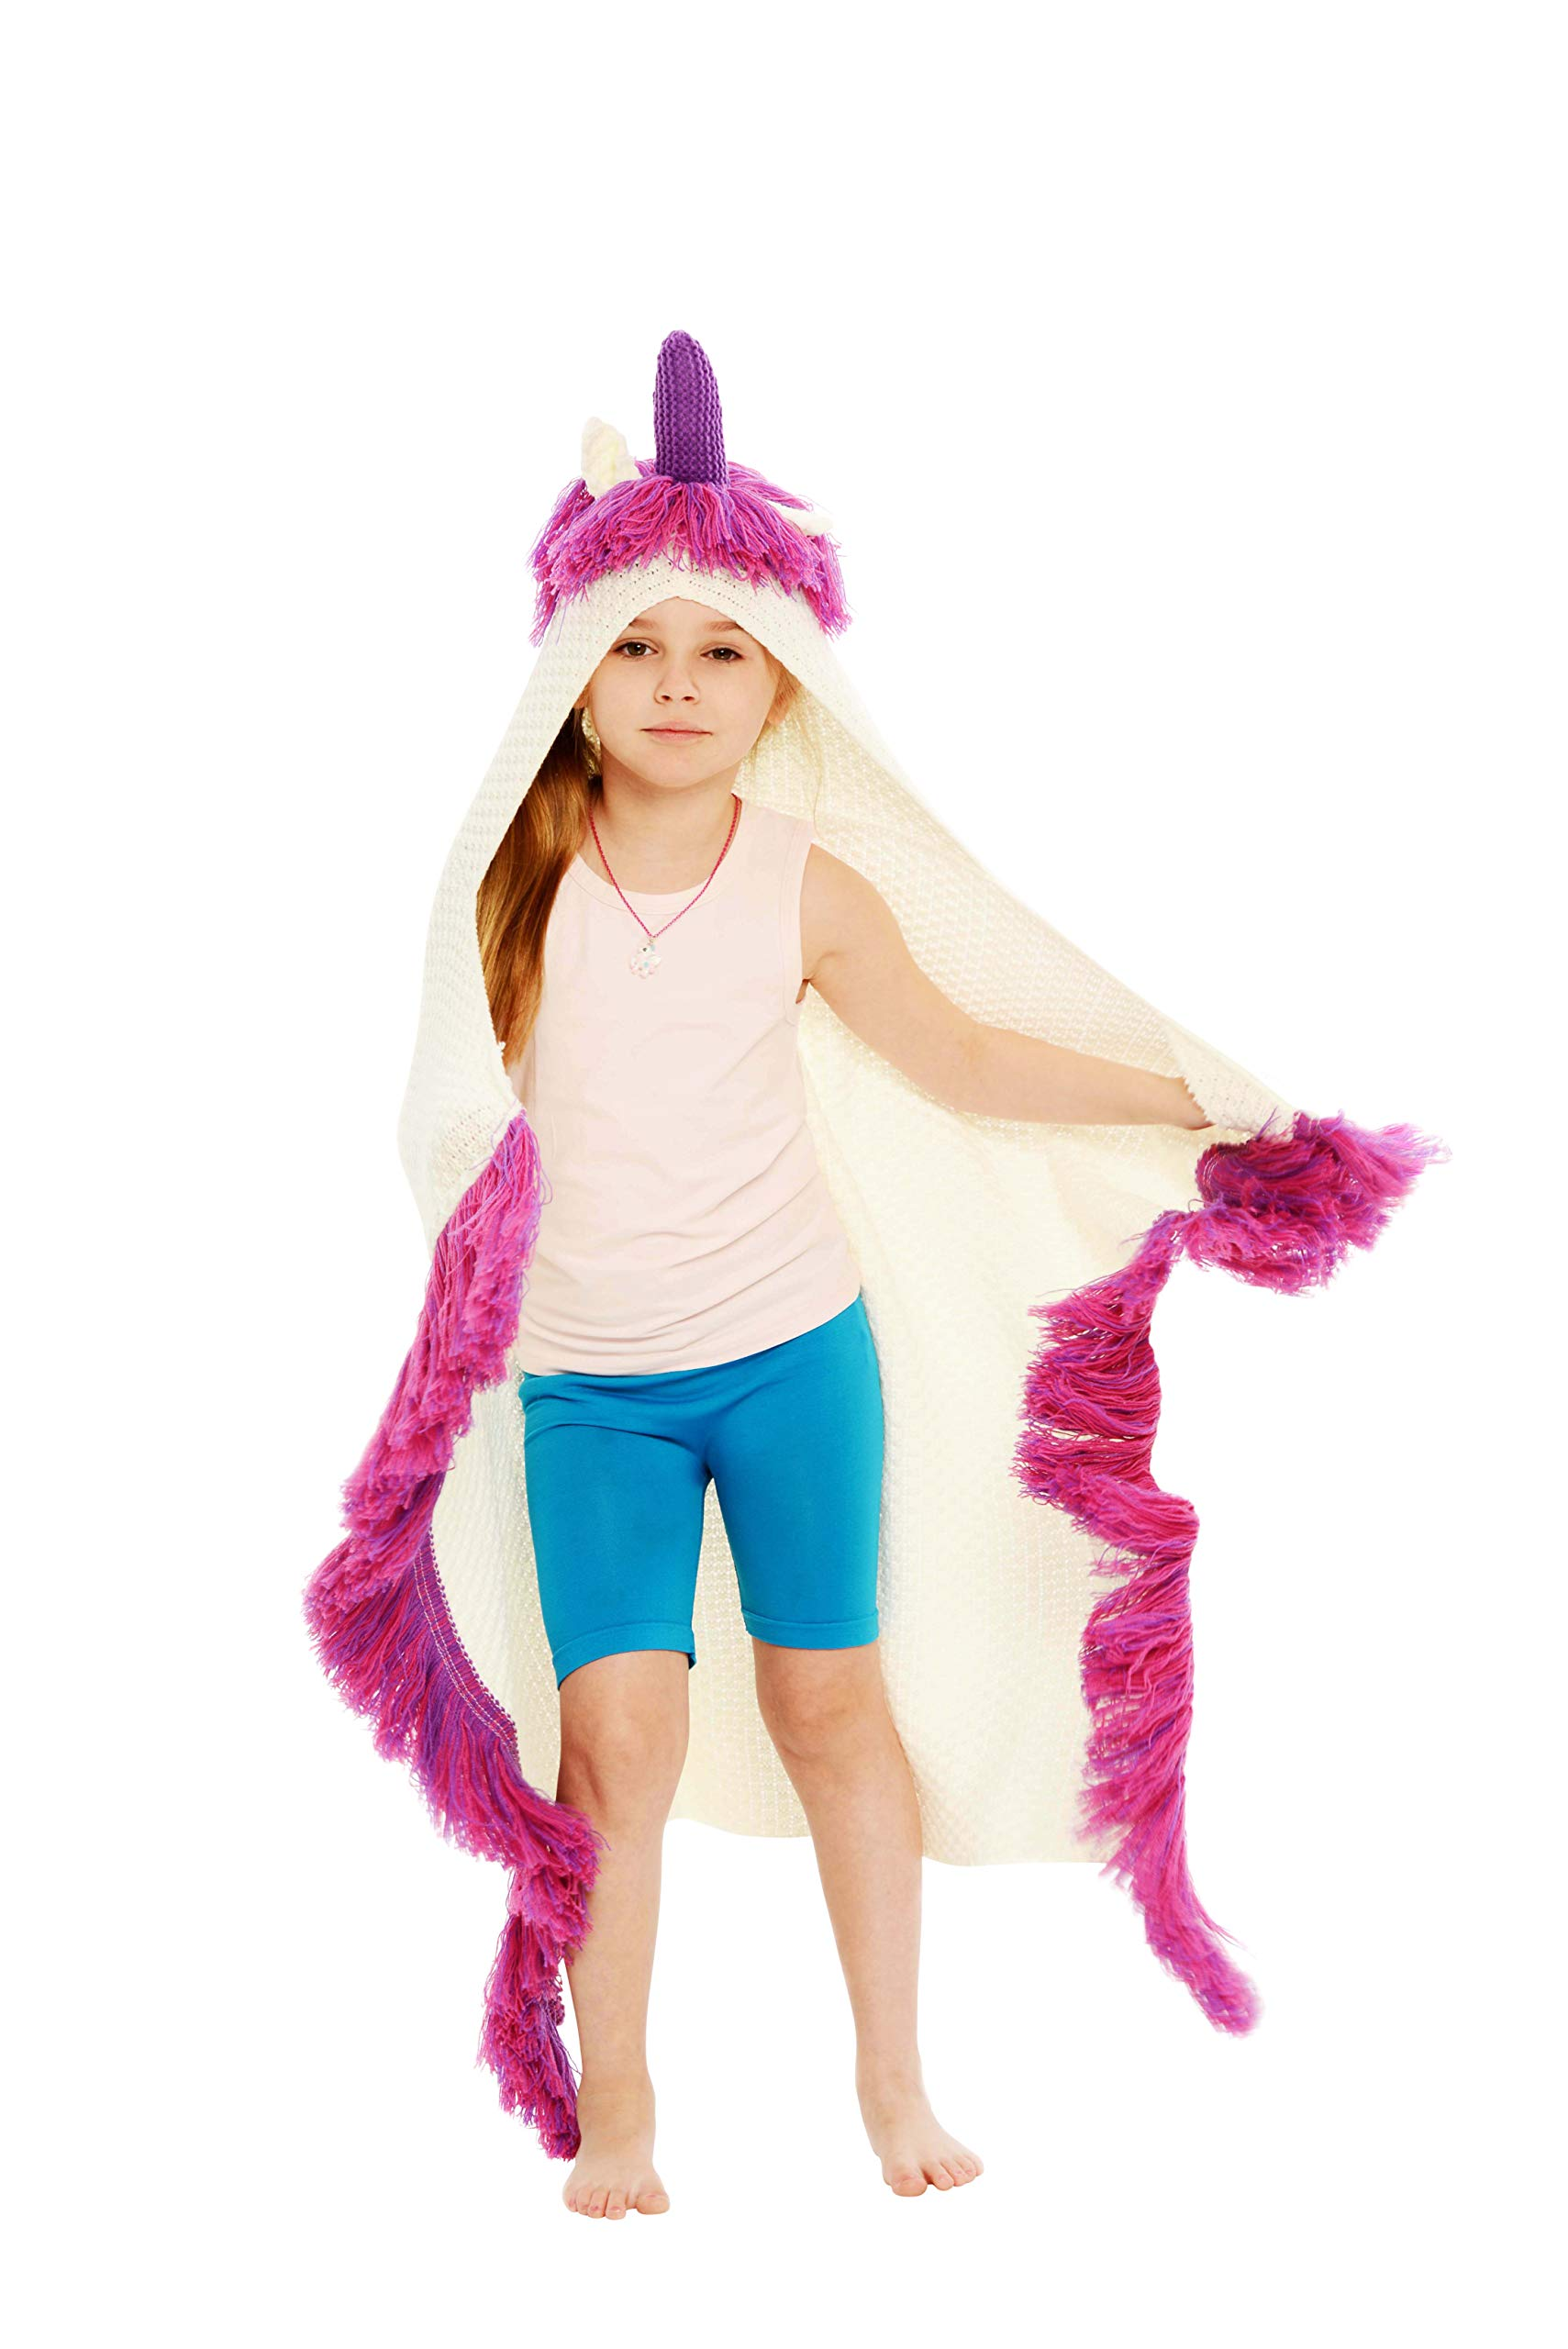 Rows of Throws Hypoallergenic Unicorn Blanket with Hood for Kids - Rare Purple Horn Model